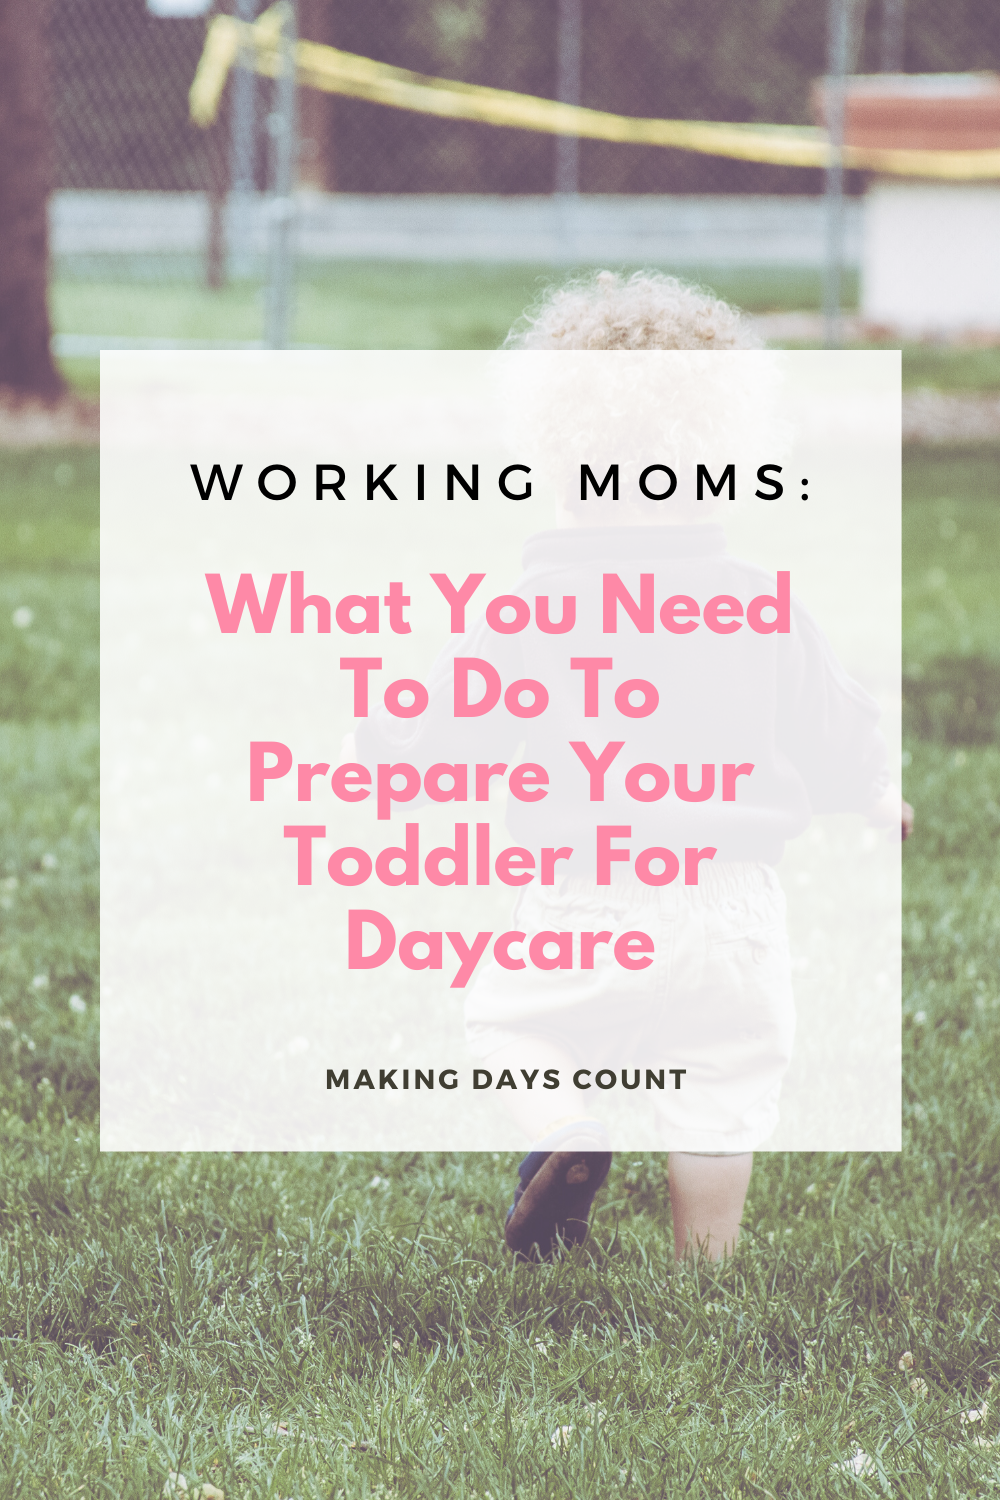 Tips For preparing toddler for daycare